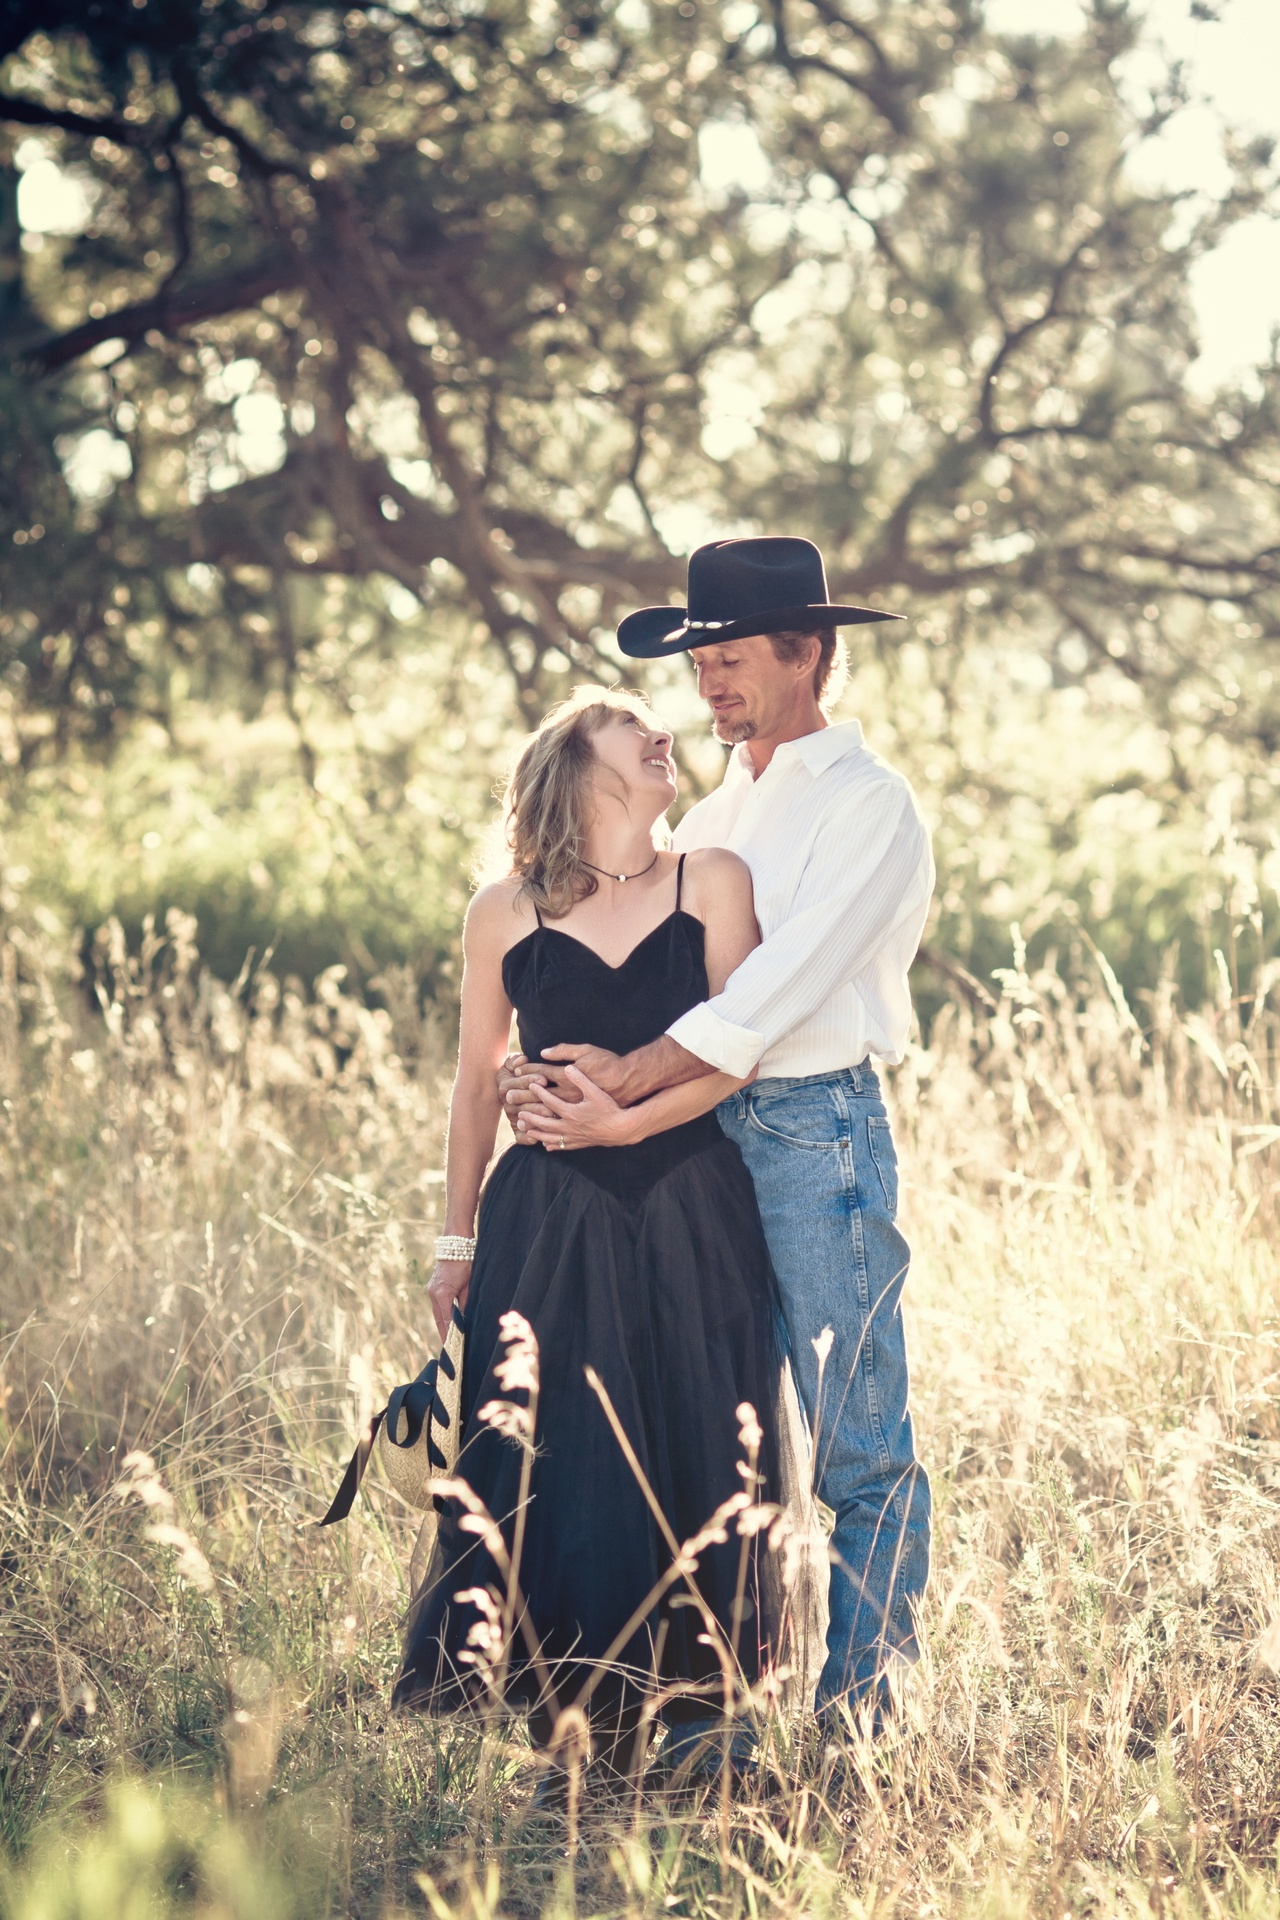 The Farmer & His girl